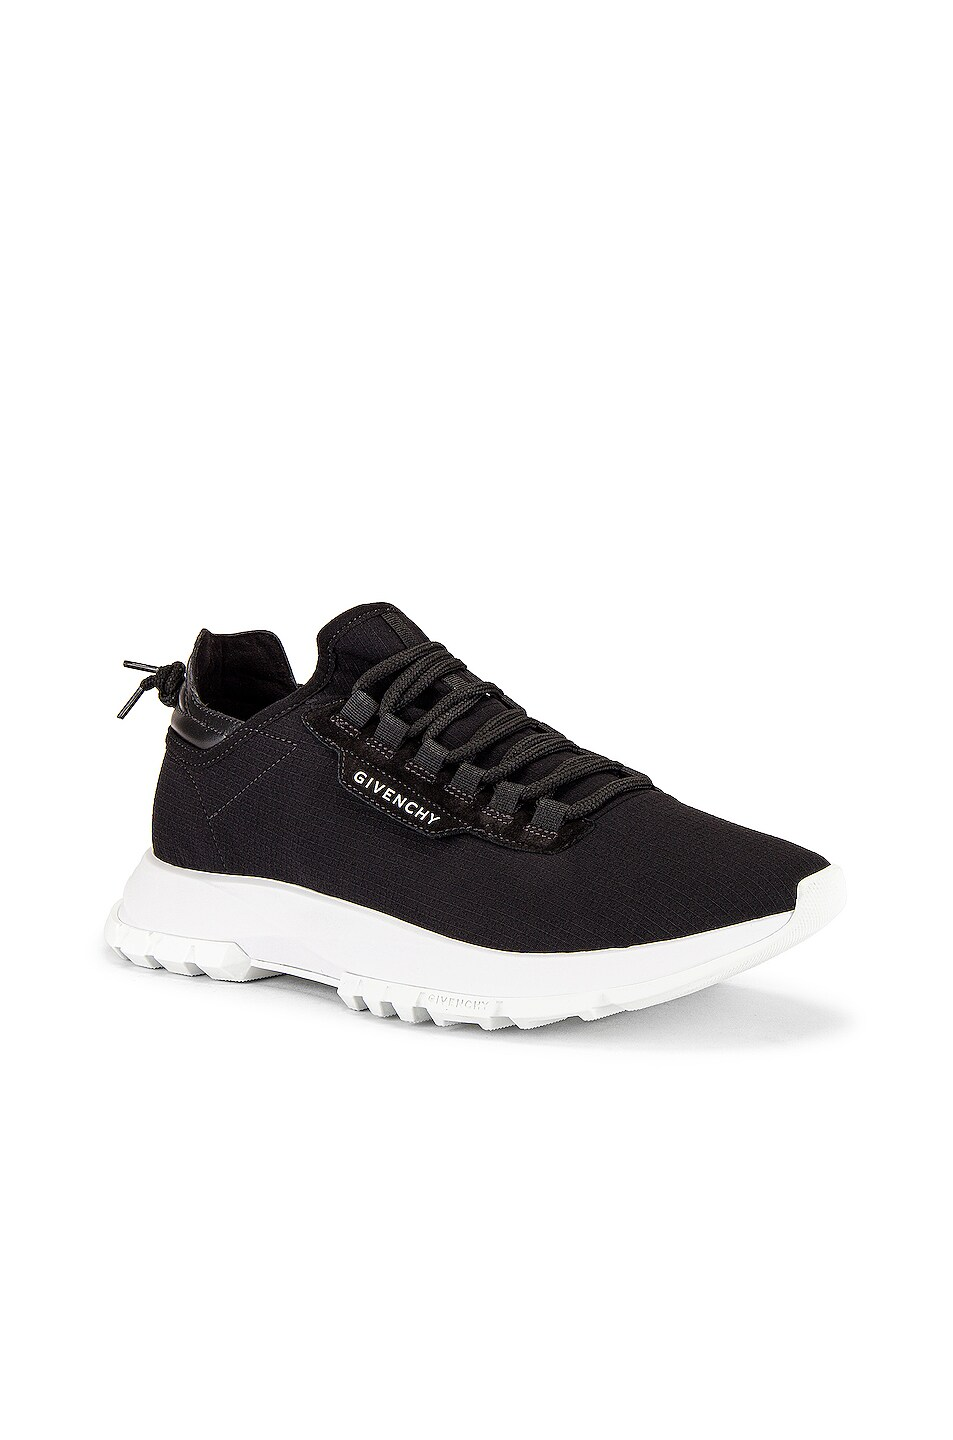 Image 2 of Givenchy Spectre Low Top Sneaker in Black